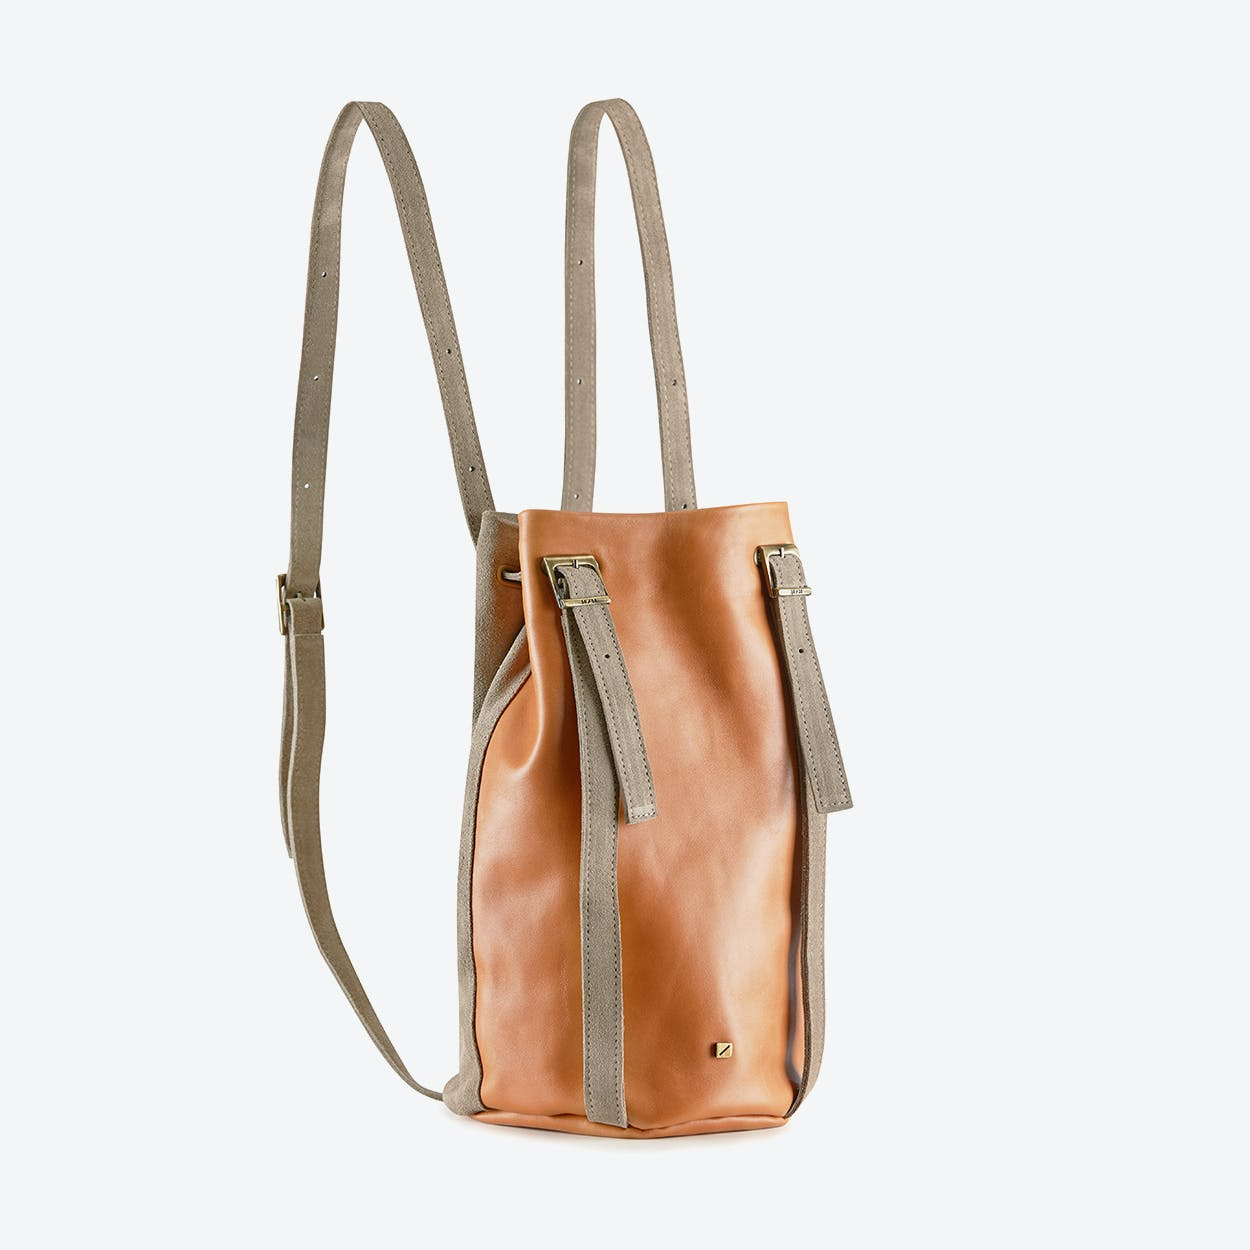 Drawstring Backpack Amber in Caramel Brown Leather and Grey Suede